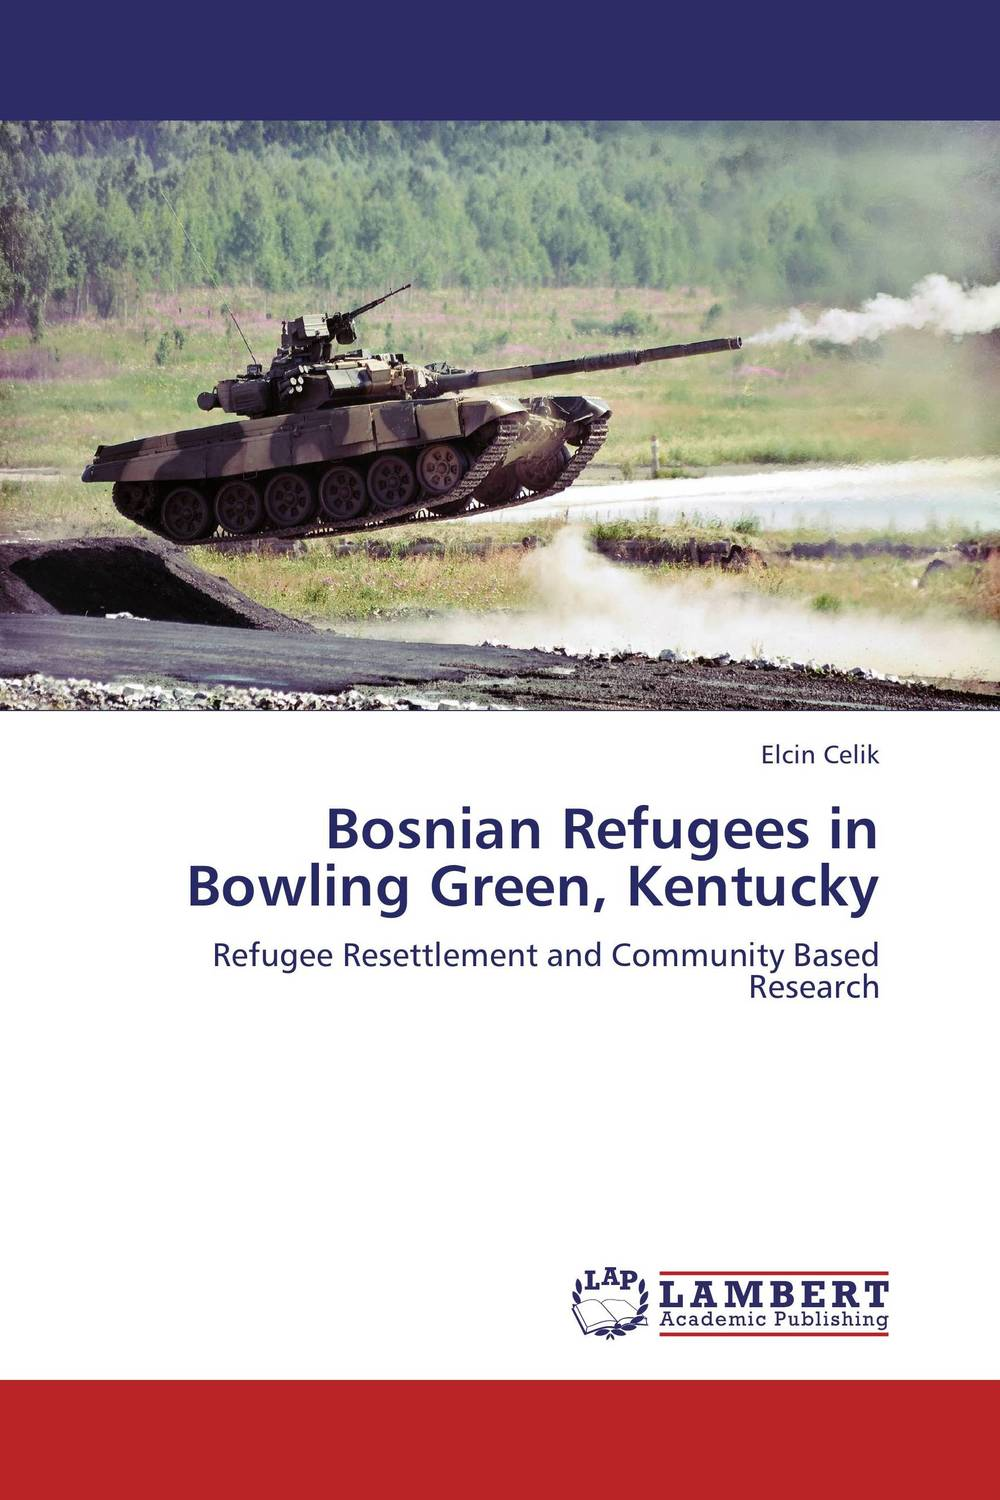 Bosnian Refugees in Bowling Green, Kentucky land conflicts and livelihoods of refugees and host communities